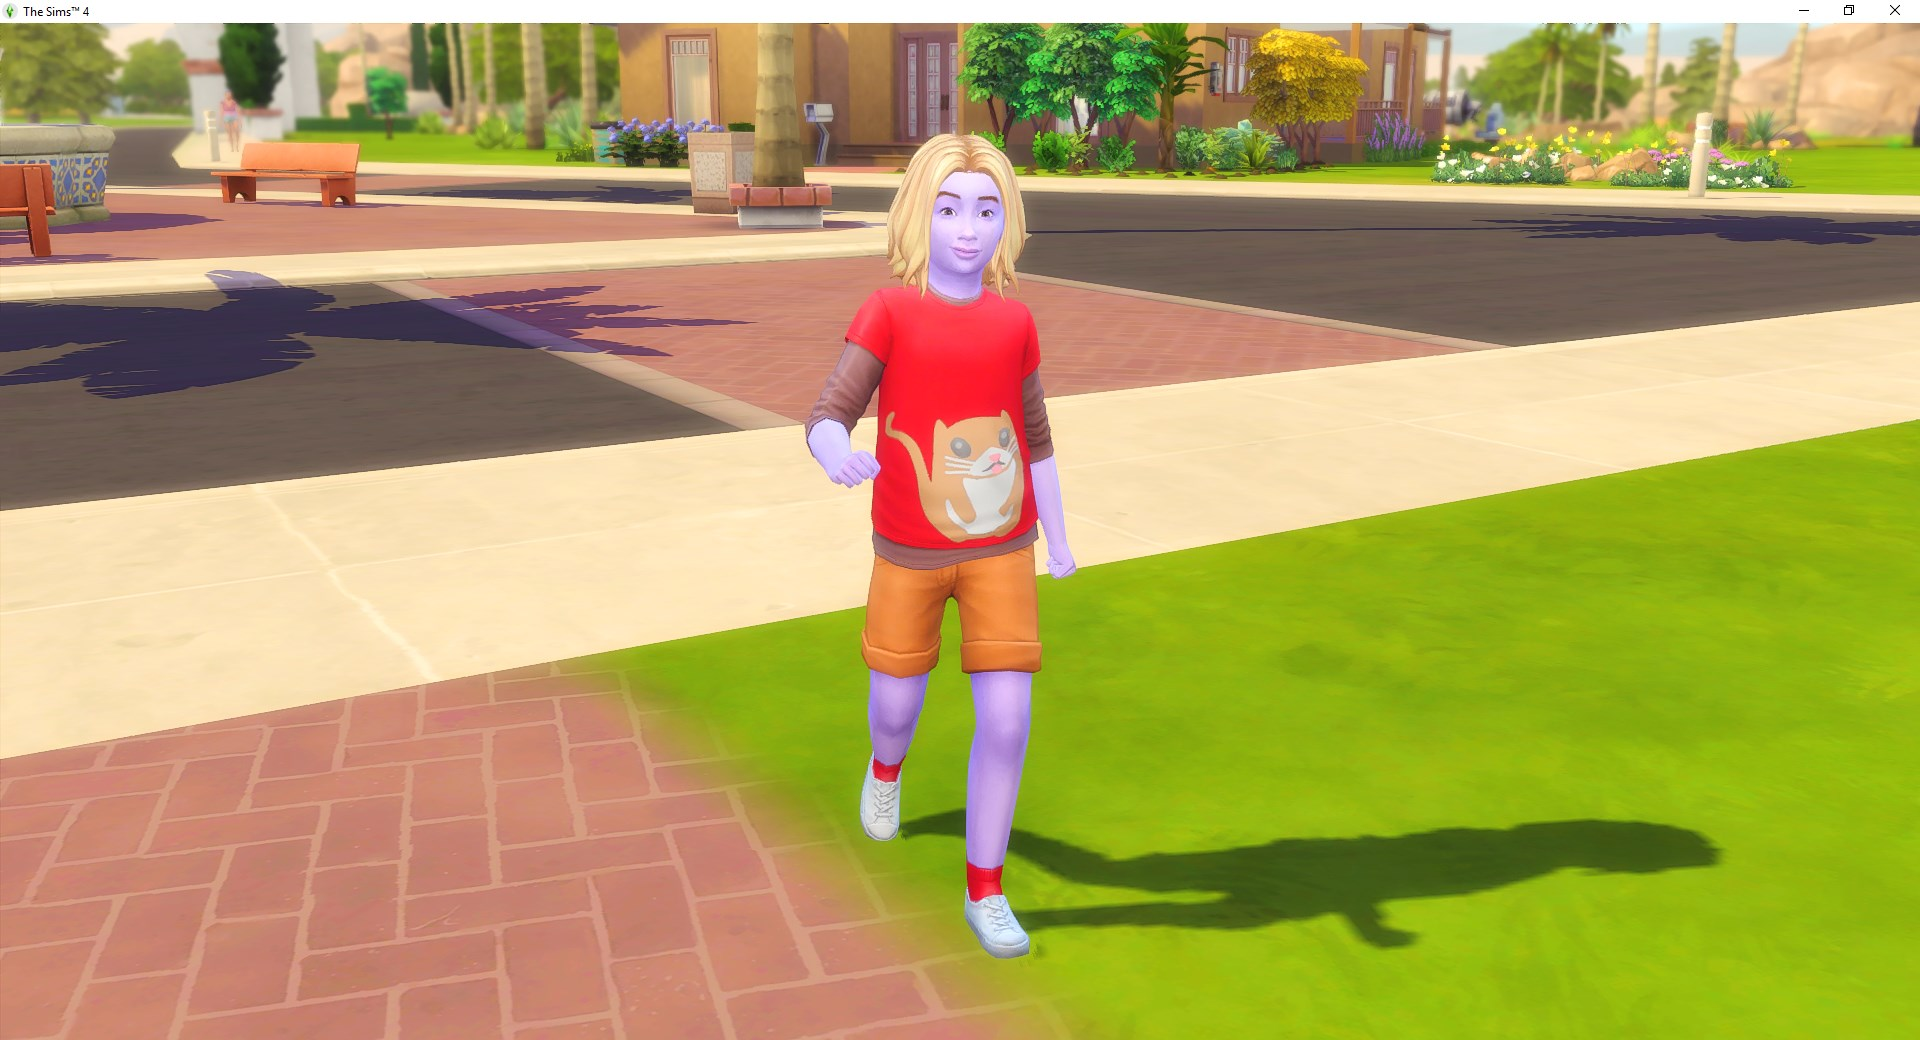 2019-08-22 06_19_33-The Sims™ 4